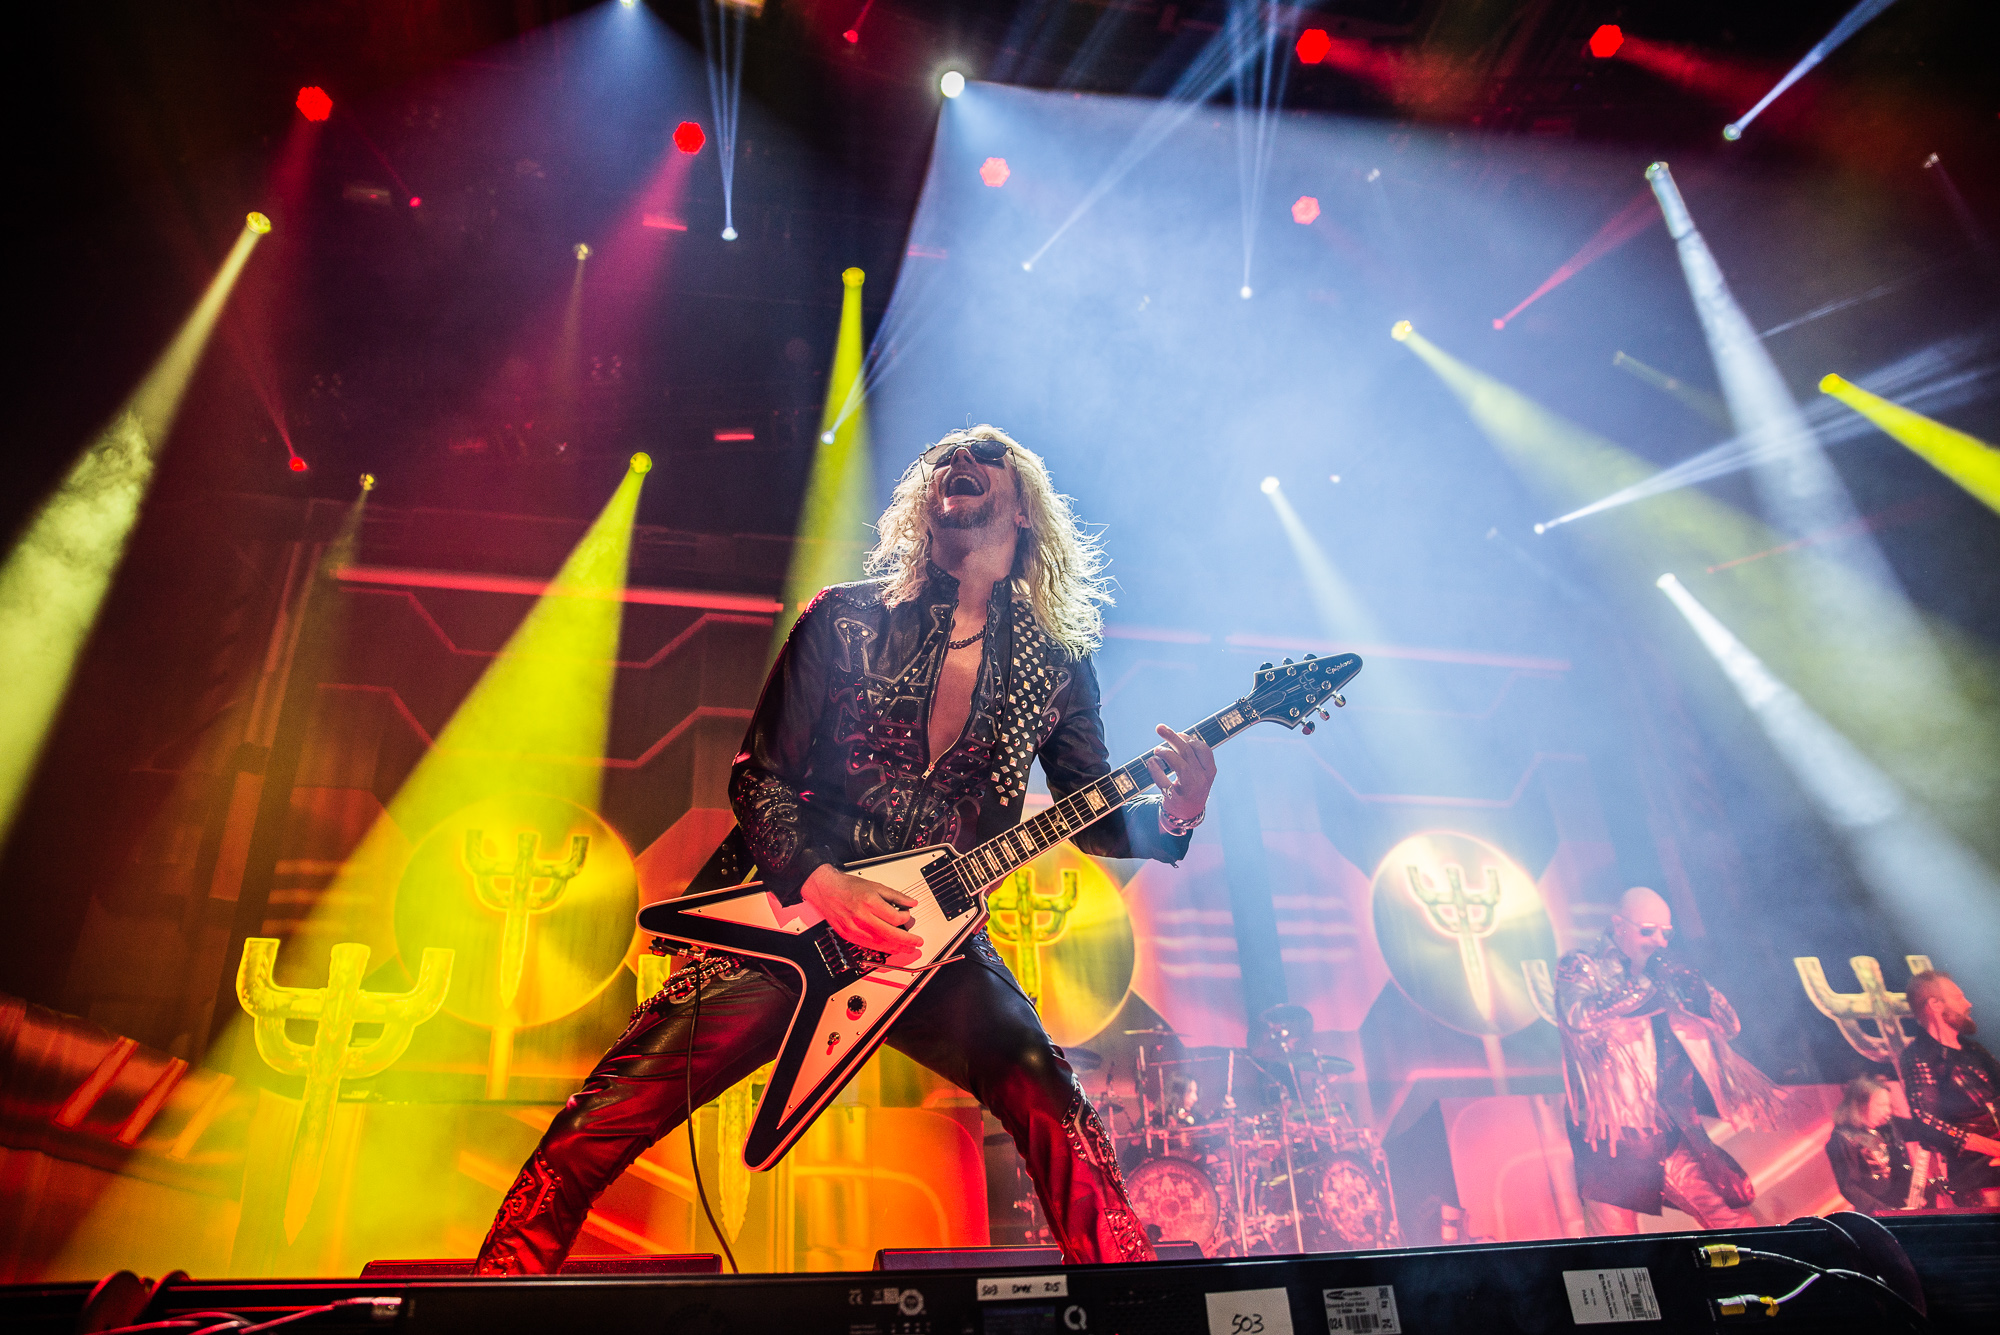 05062018_Judas_Priest@OS_DH_WillyLarsenPhotography (9 of 35)